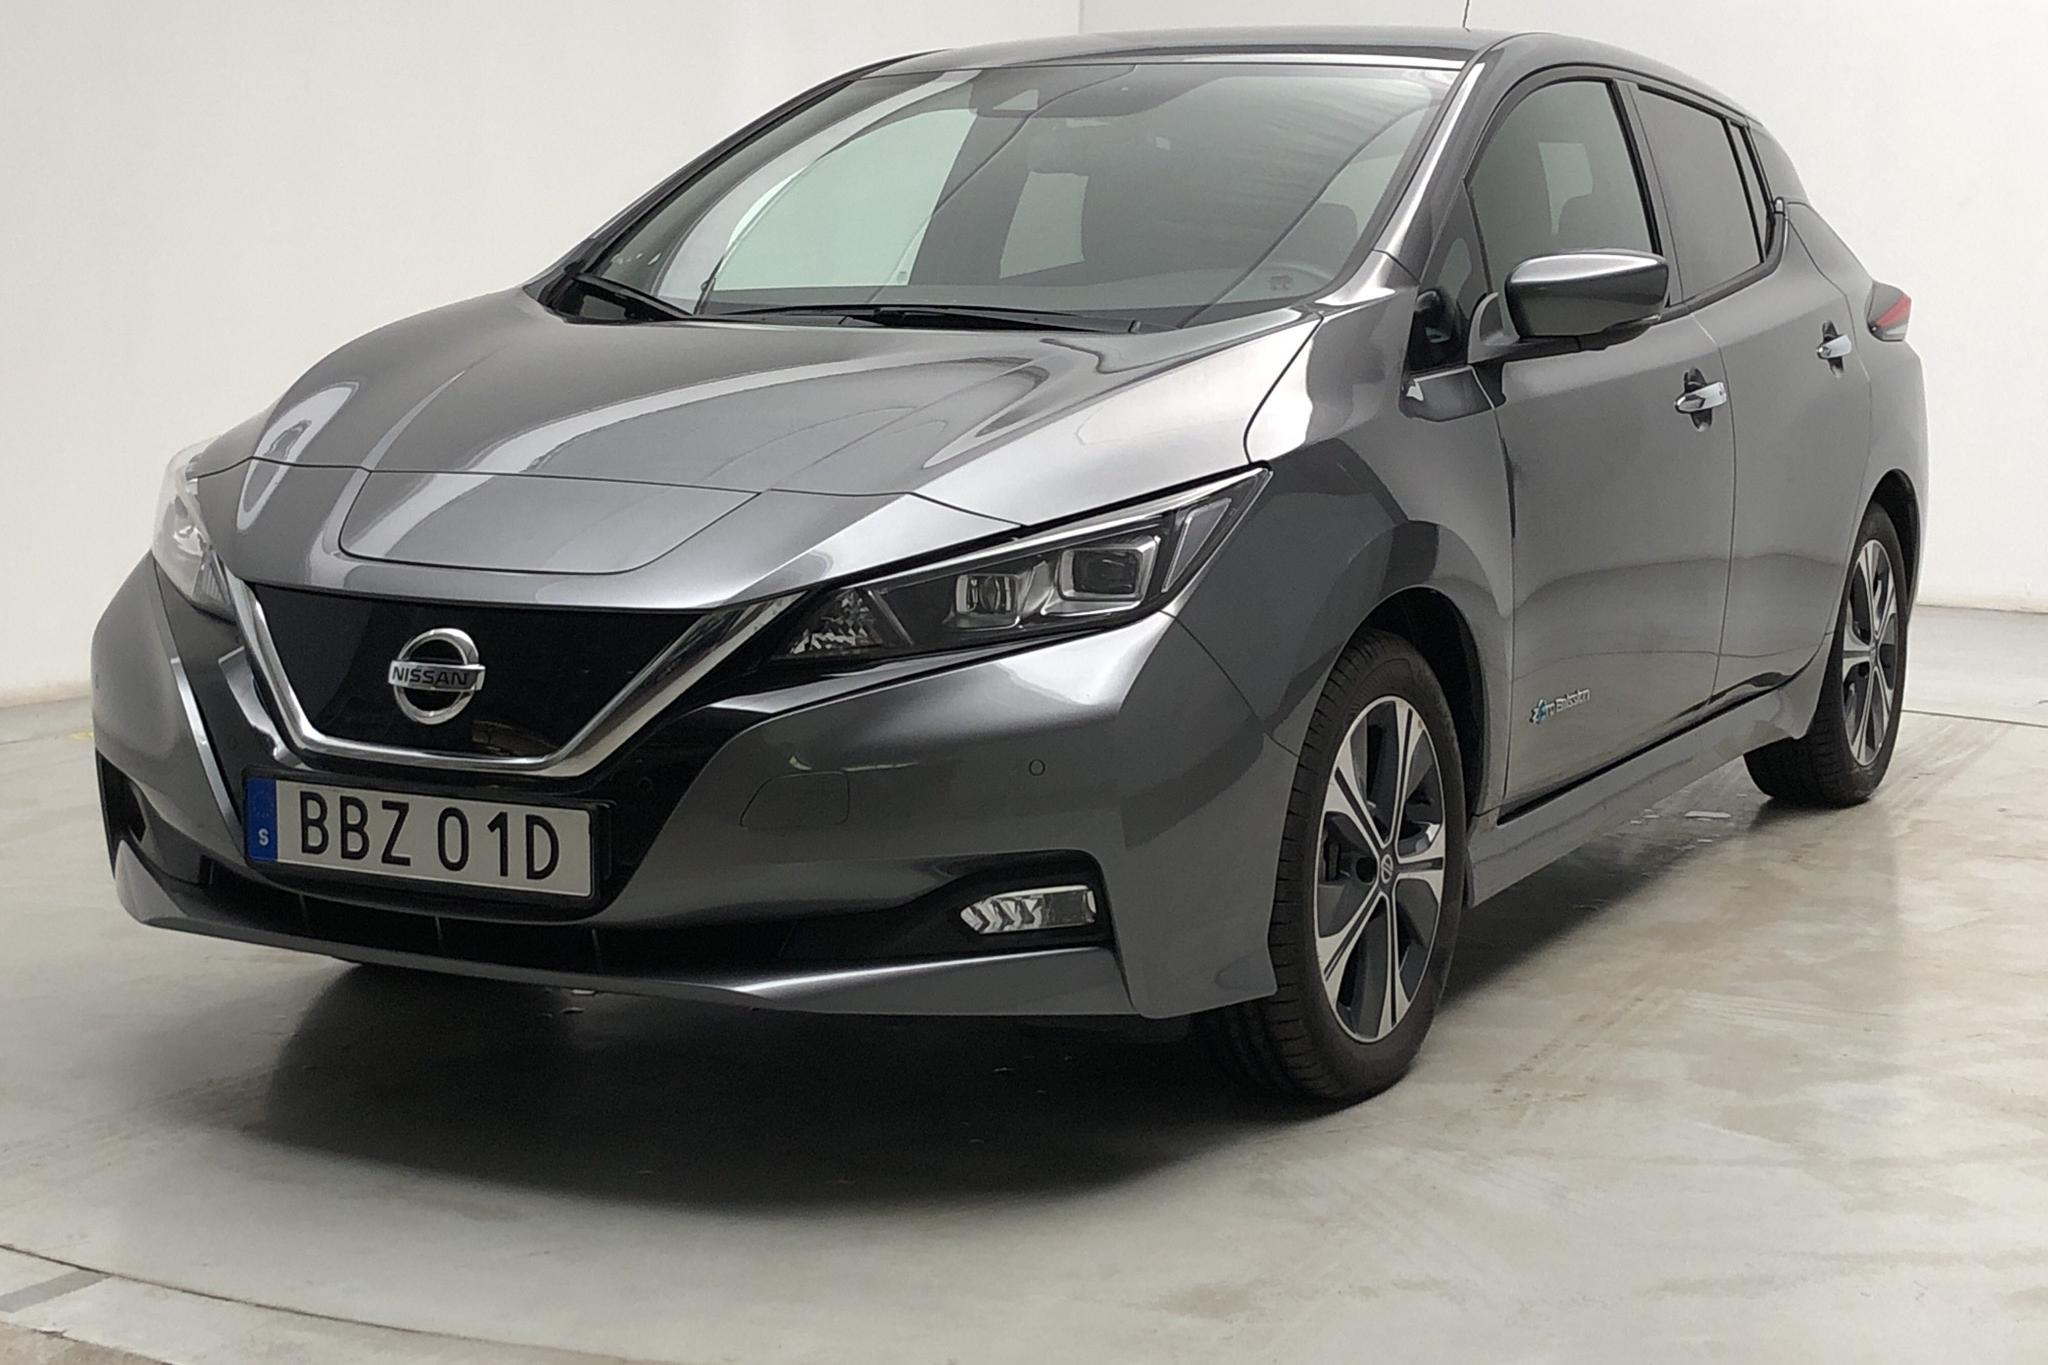 Nissan LEAF 5dr 40 kWh (150hk) - 7 720 km - Automatic - gray - 2020